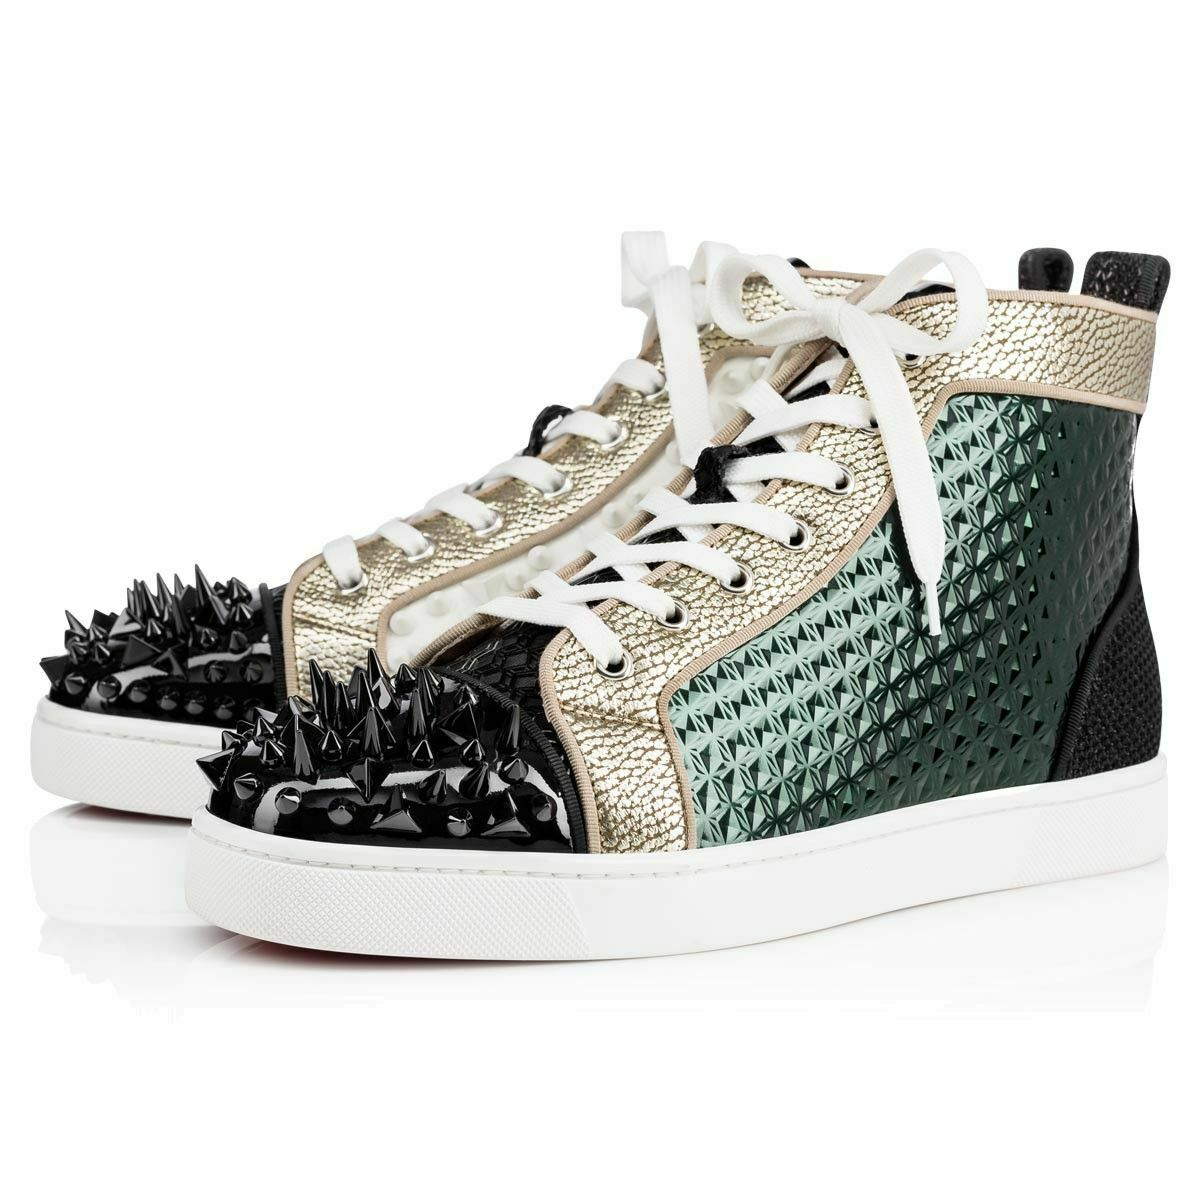 Christian Louboutin Mens Louis Pik Bis Spike Patent Flat High Top Sneaker 46